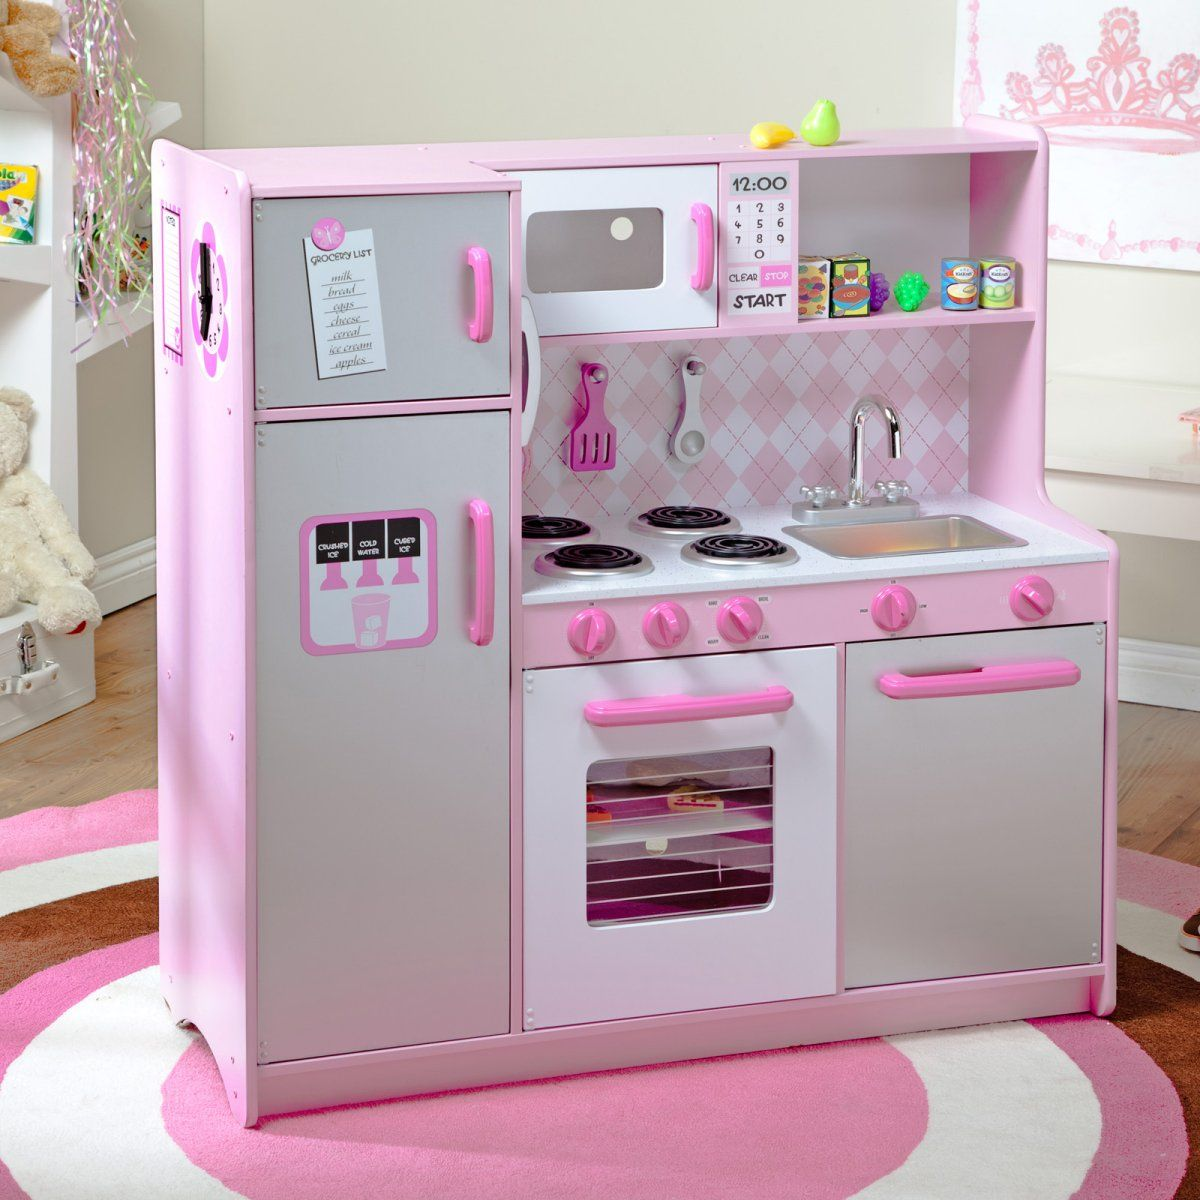 kidkraft argyle play kitchen with 60 pc. food set - play kitchens